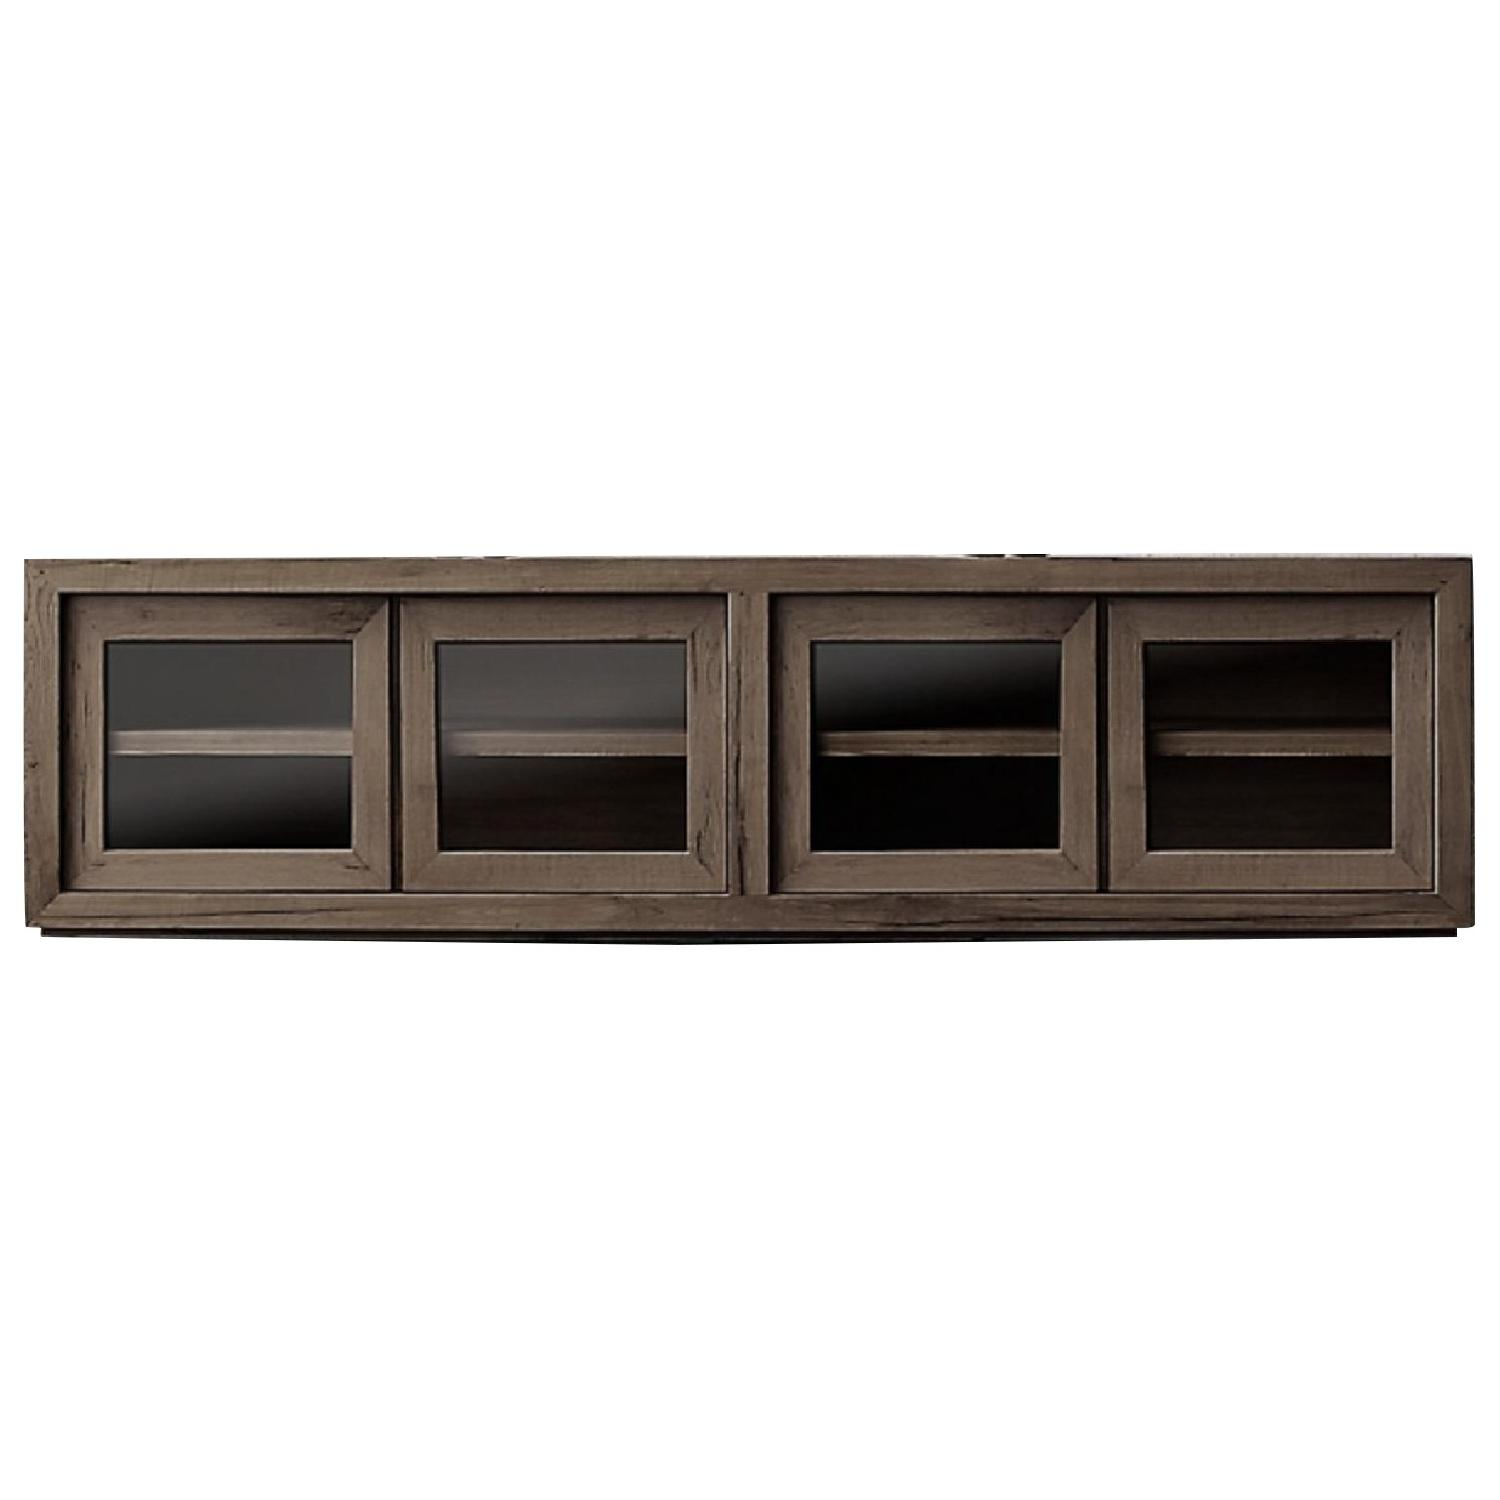 Restoration Hardware Reclaimed Oak Glass 4-Door Cabinet - image-0